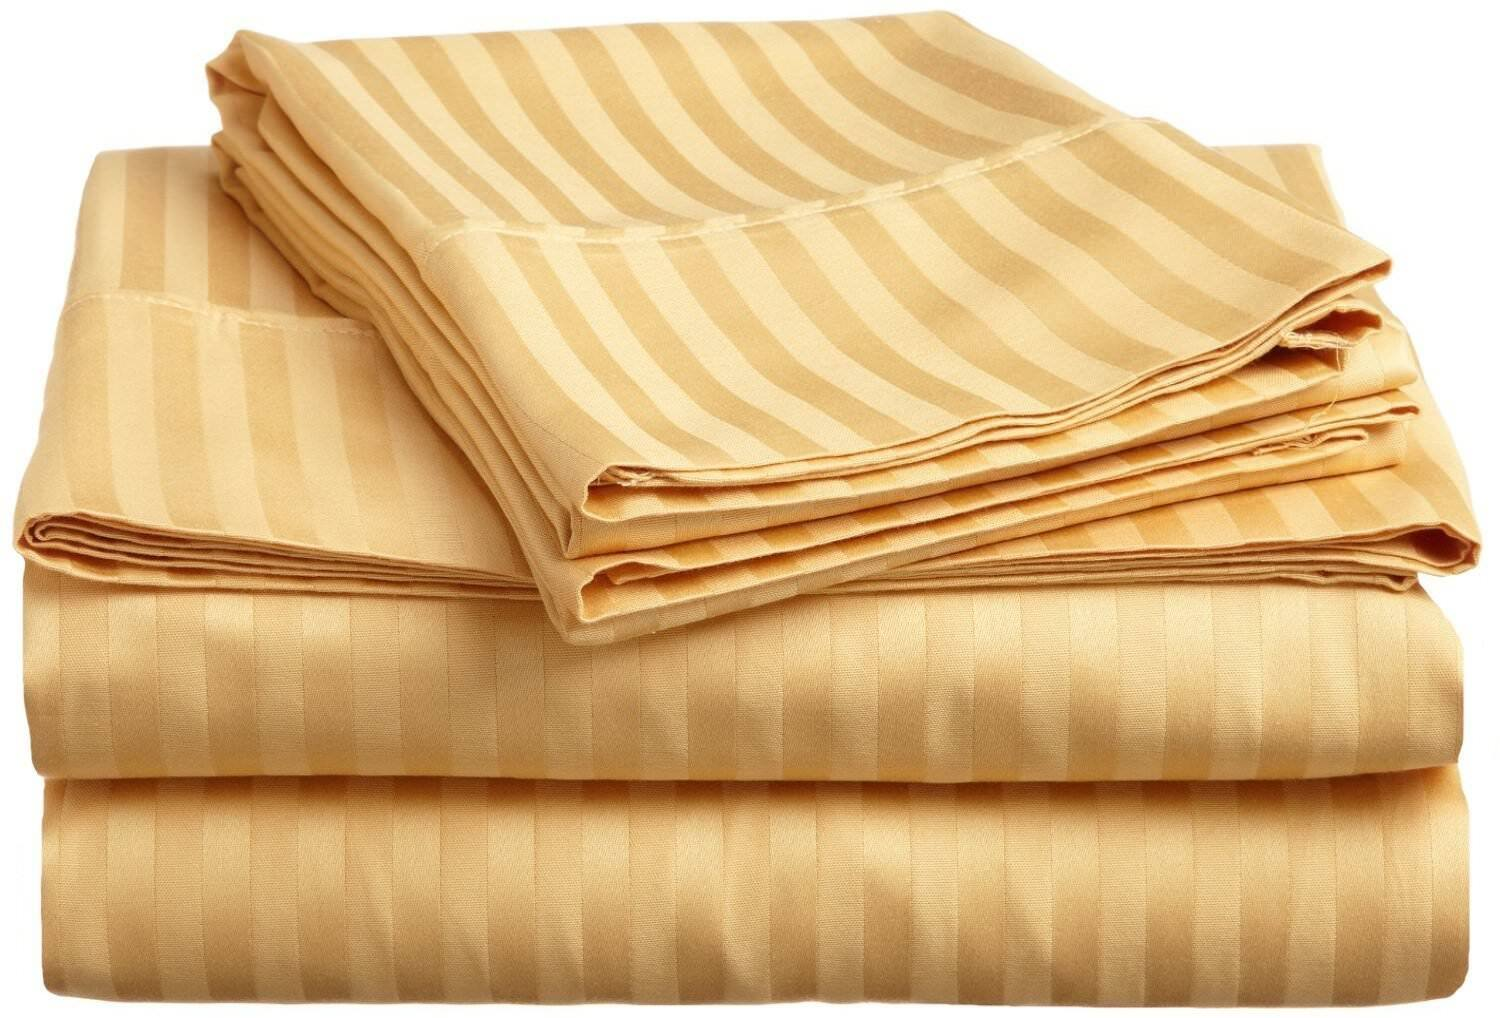 New Twin - Full - King - Queen Sizes 4PCs Sheet Set 1000TC gold color